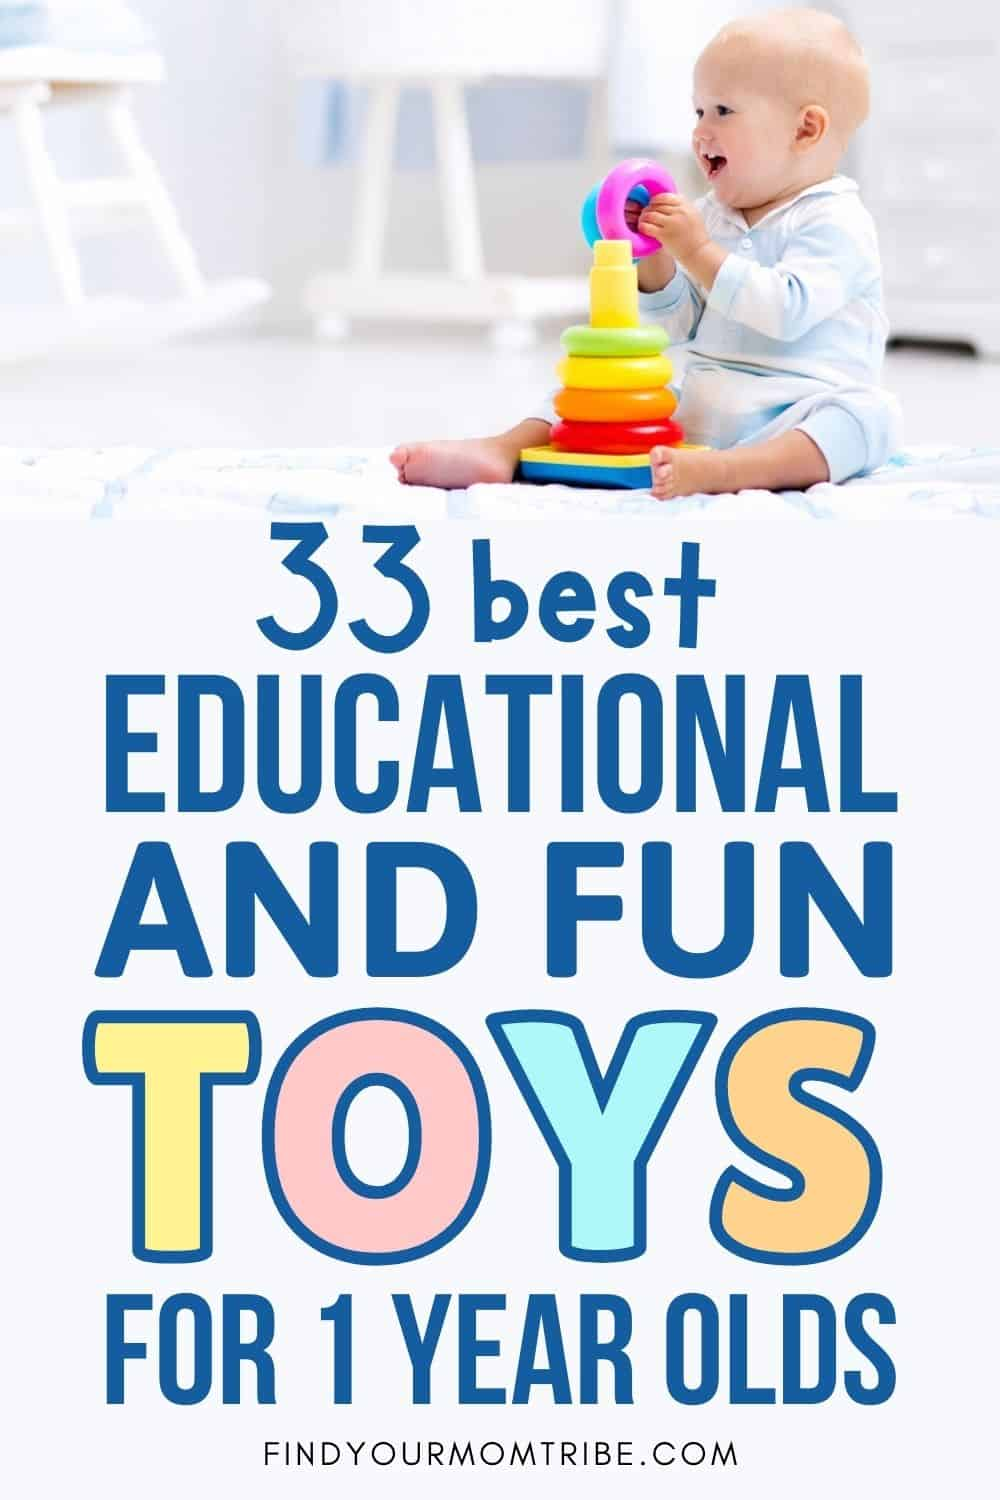 Best Educational And Fun Toys For 1 Year Olds Pinterest